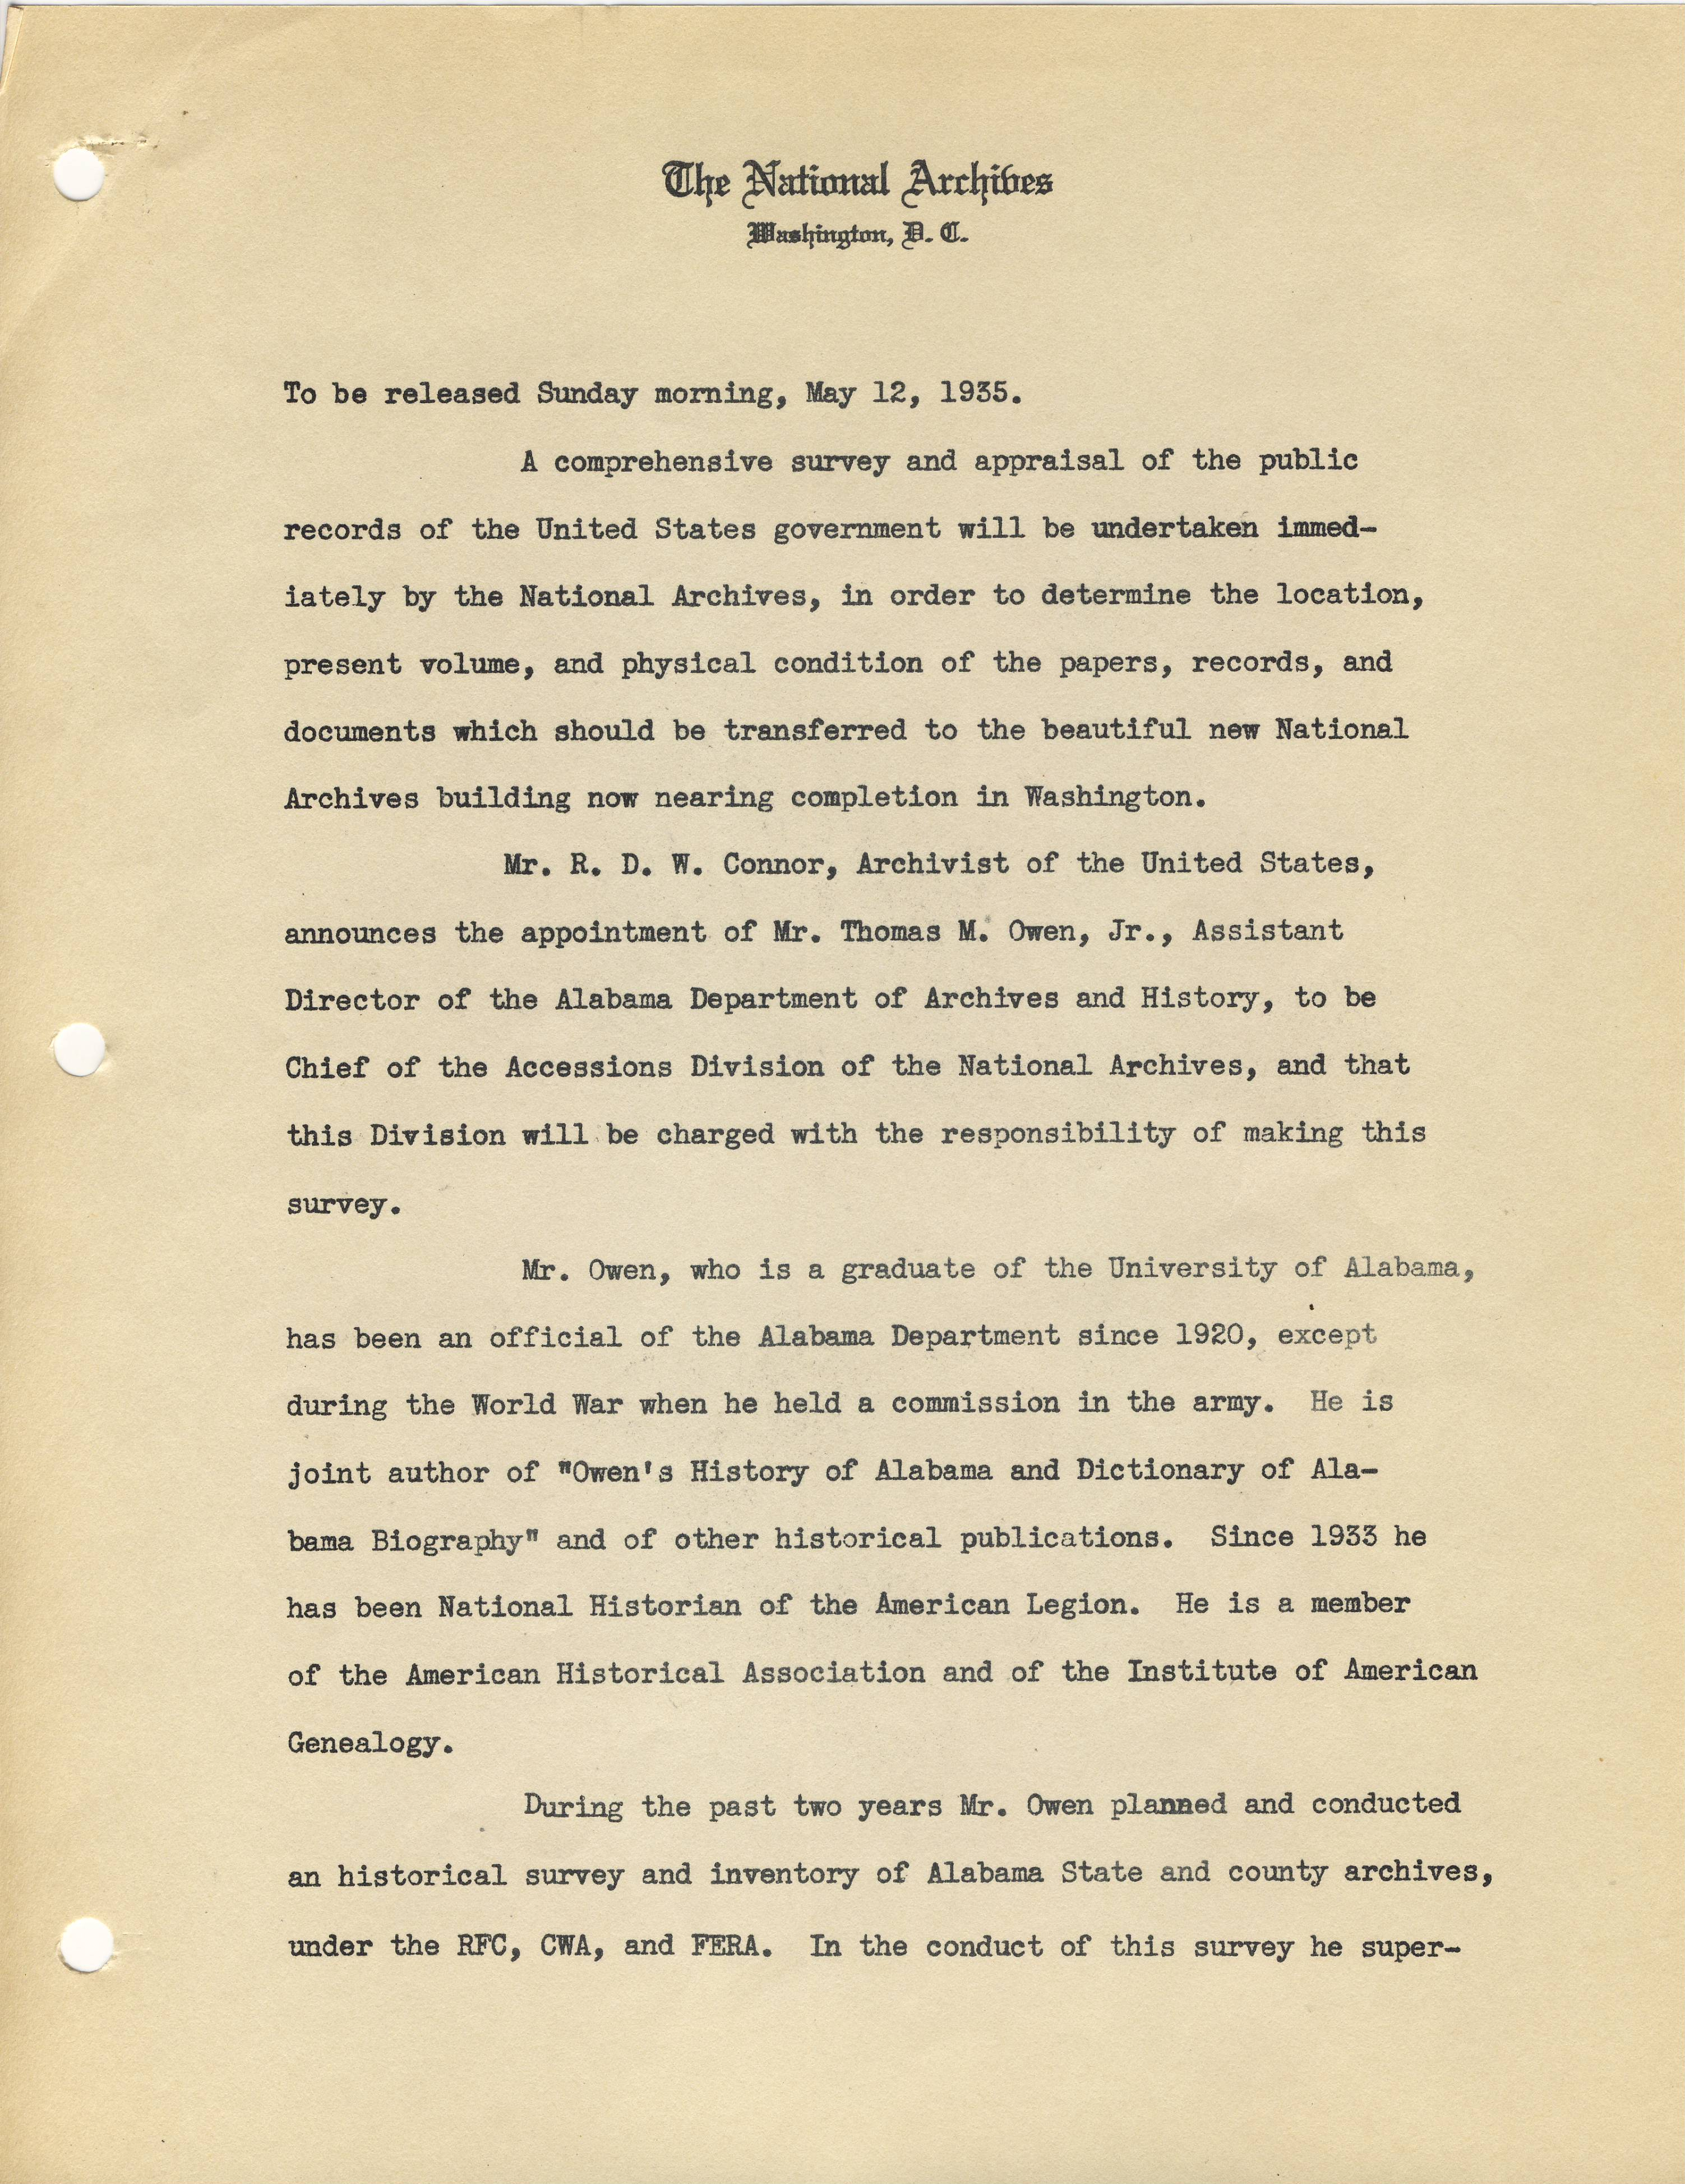 Announcement of DC Records Survey, 1935, page 1 - RG 64, A1 34, file Memoranda and Press Releases of the Archivist 1935-1936.jpg